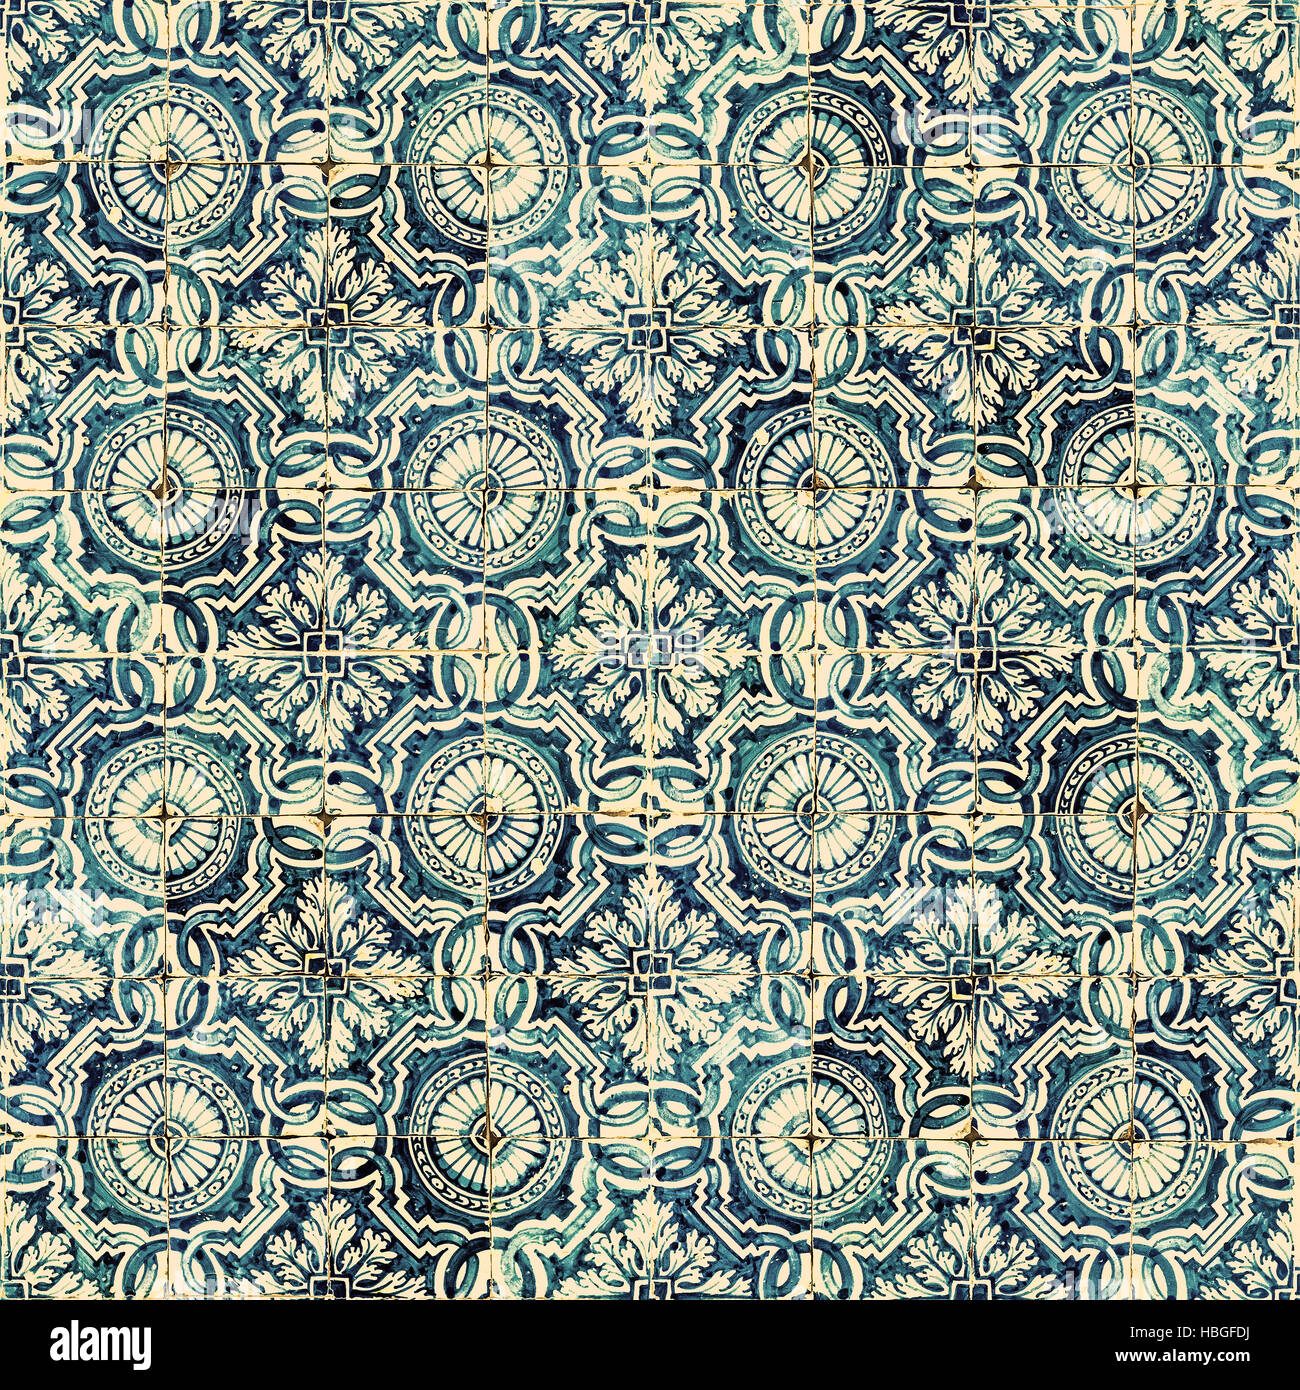 Azulejos, traditional Portuguese tiles - Stock Image